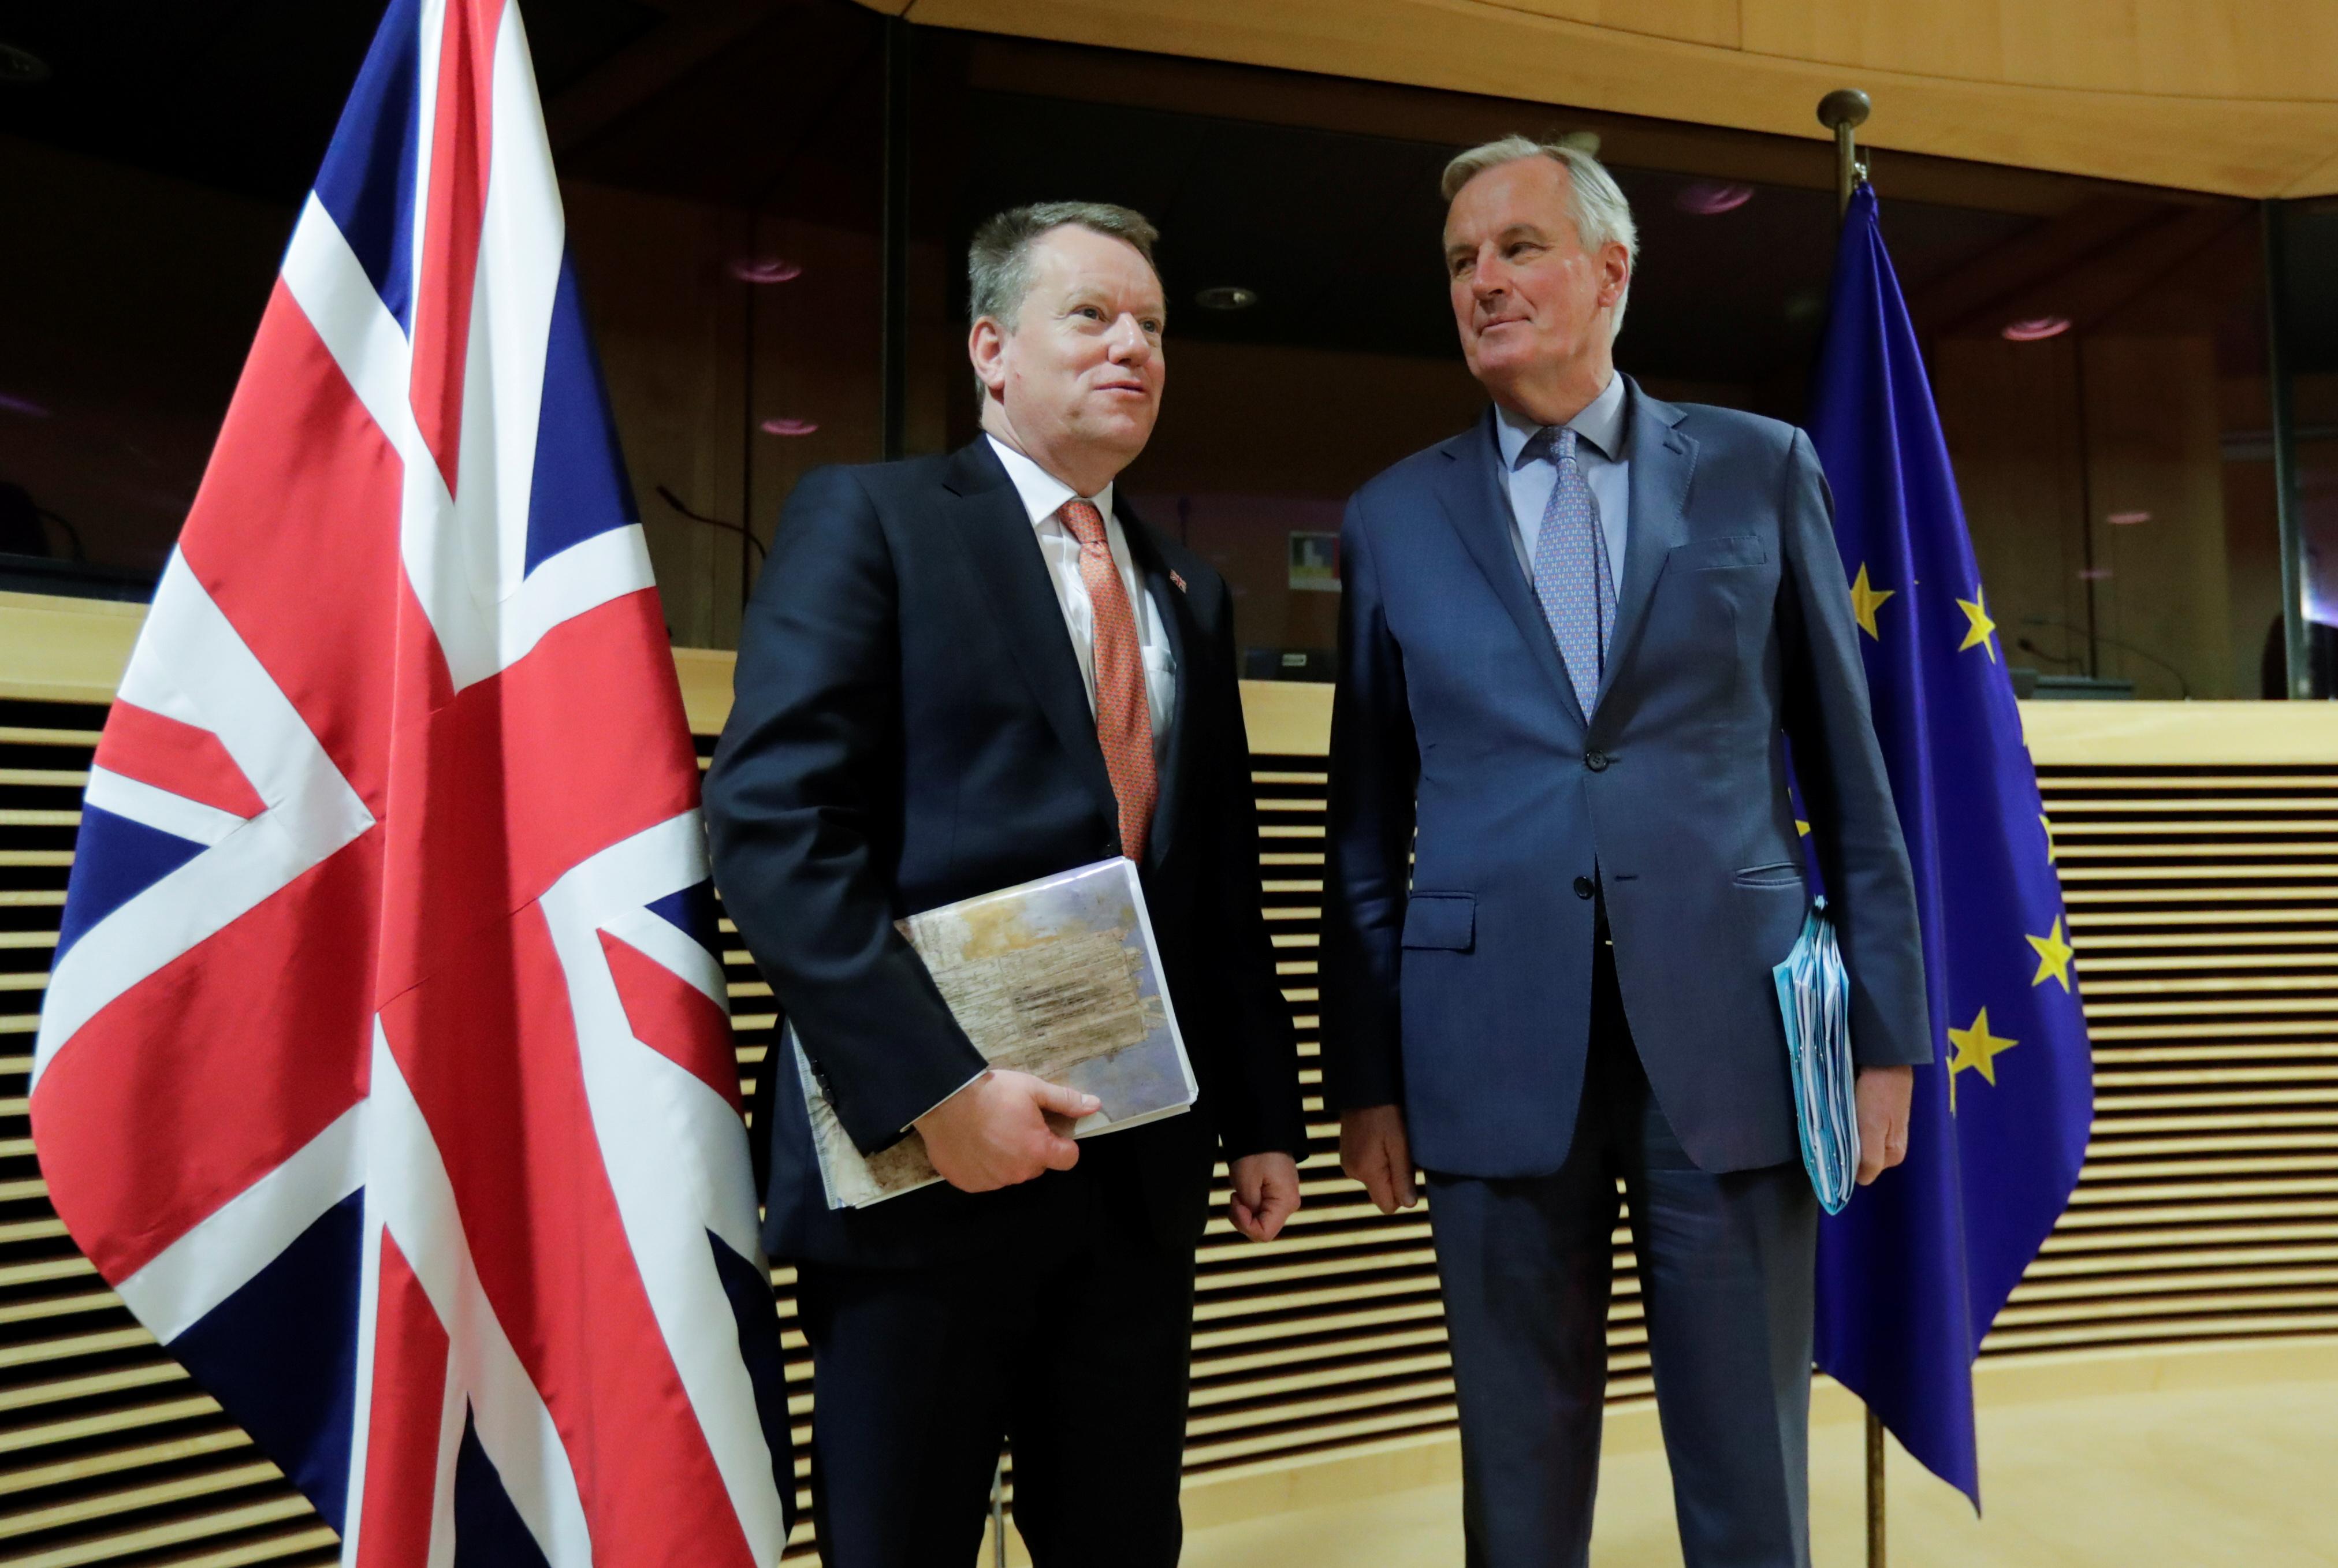 European Union chief Brexit negotiator Michel Barnier and British Prime Minister's Europe adviser David Frost 5 are seen at start of the first round of post -Brexit trade deal talks between the EU and the United Kingdom, in Brussels, Belgium March 2, 2020. Oliver Hoslet/Pool via REUTERS